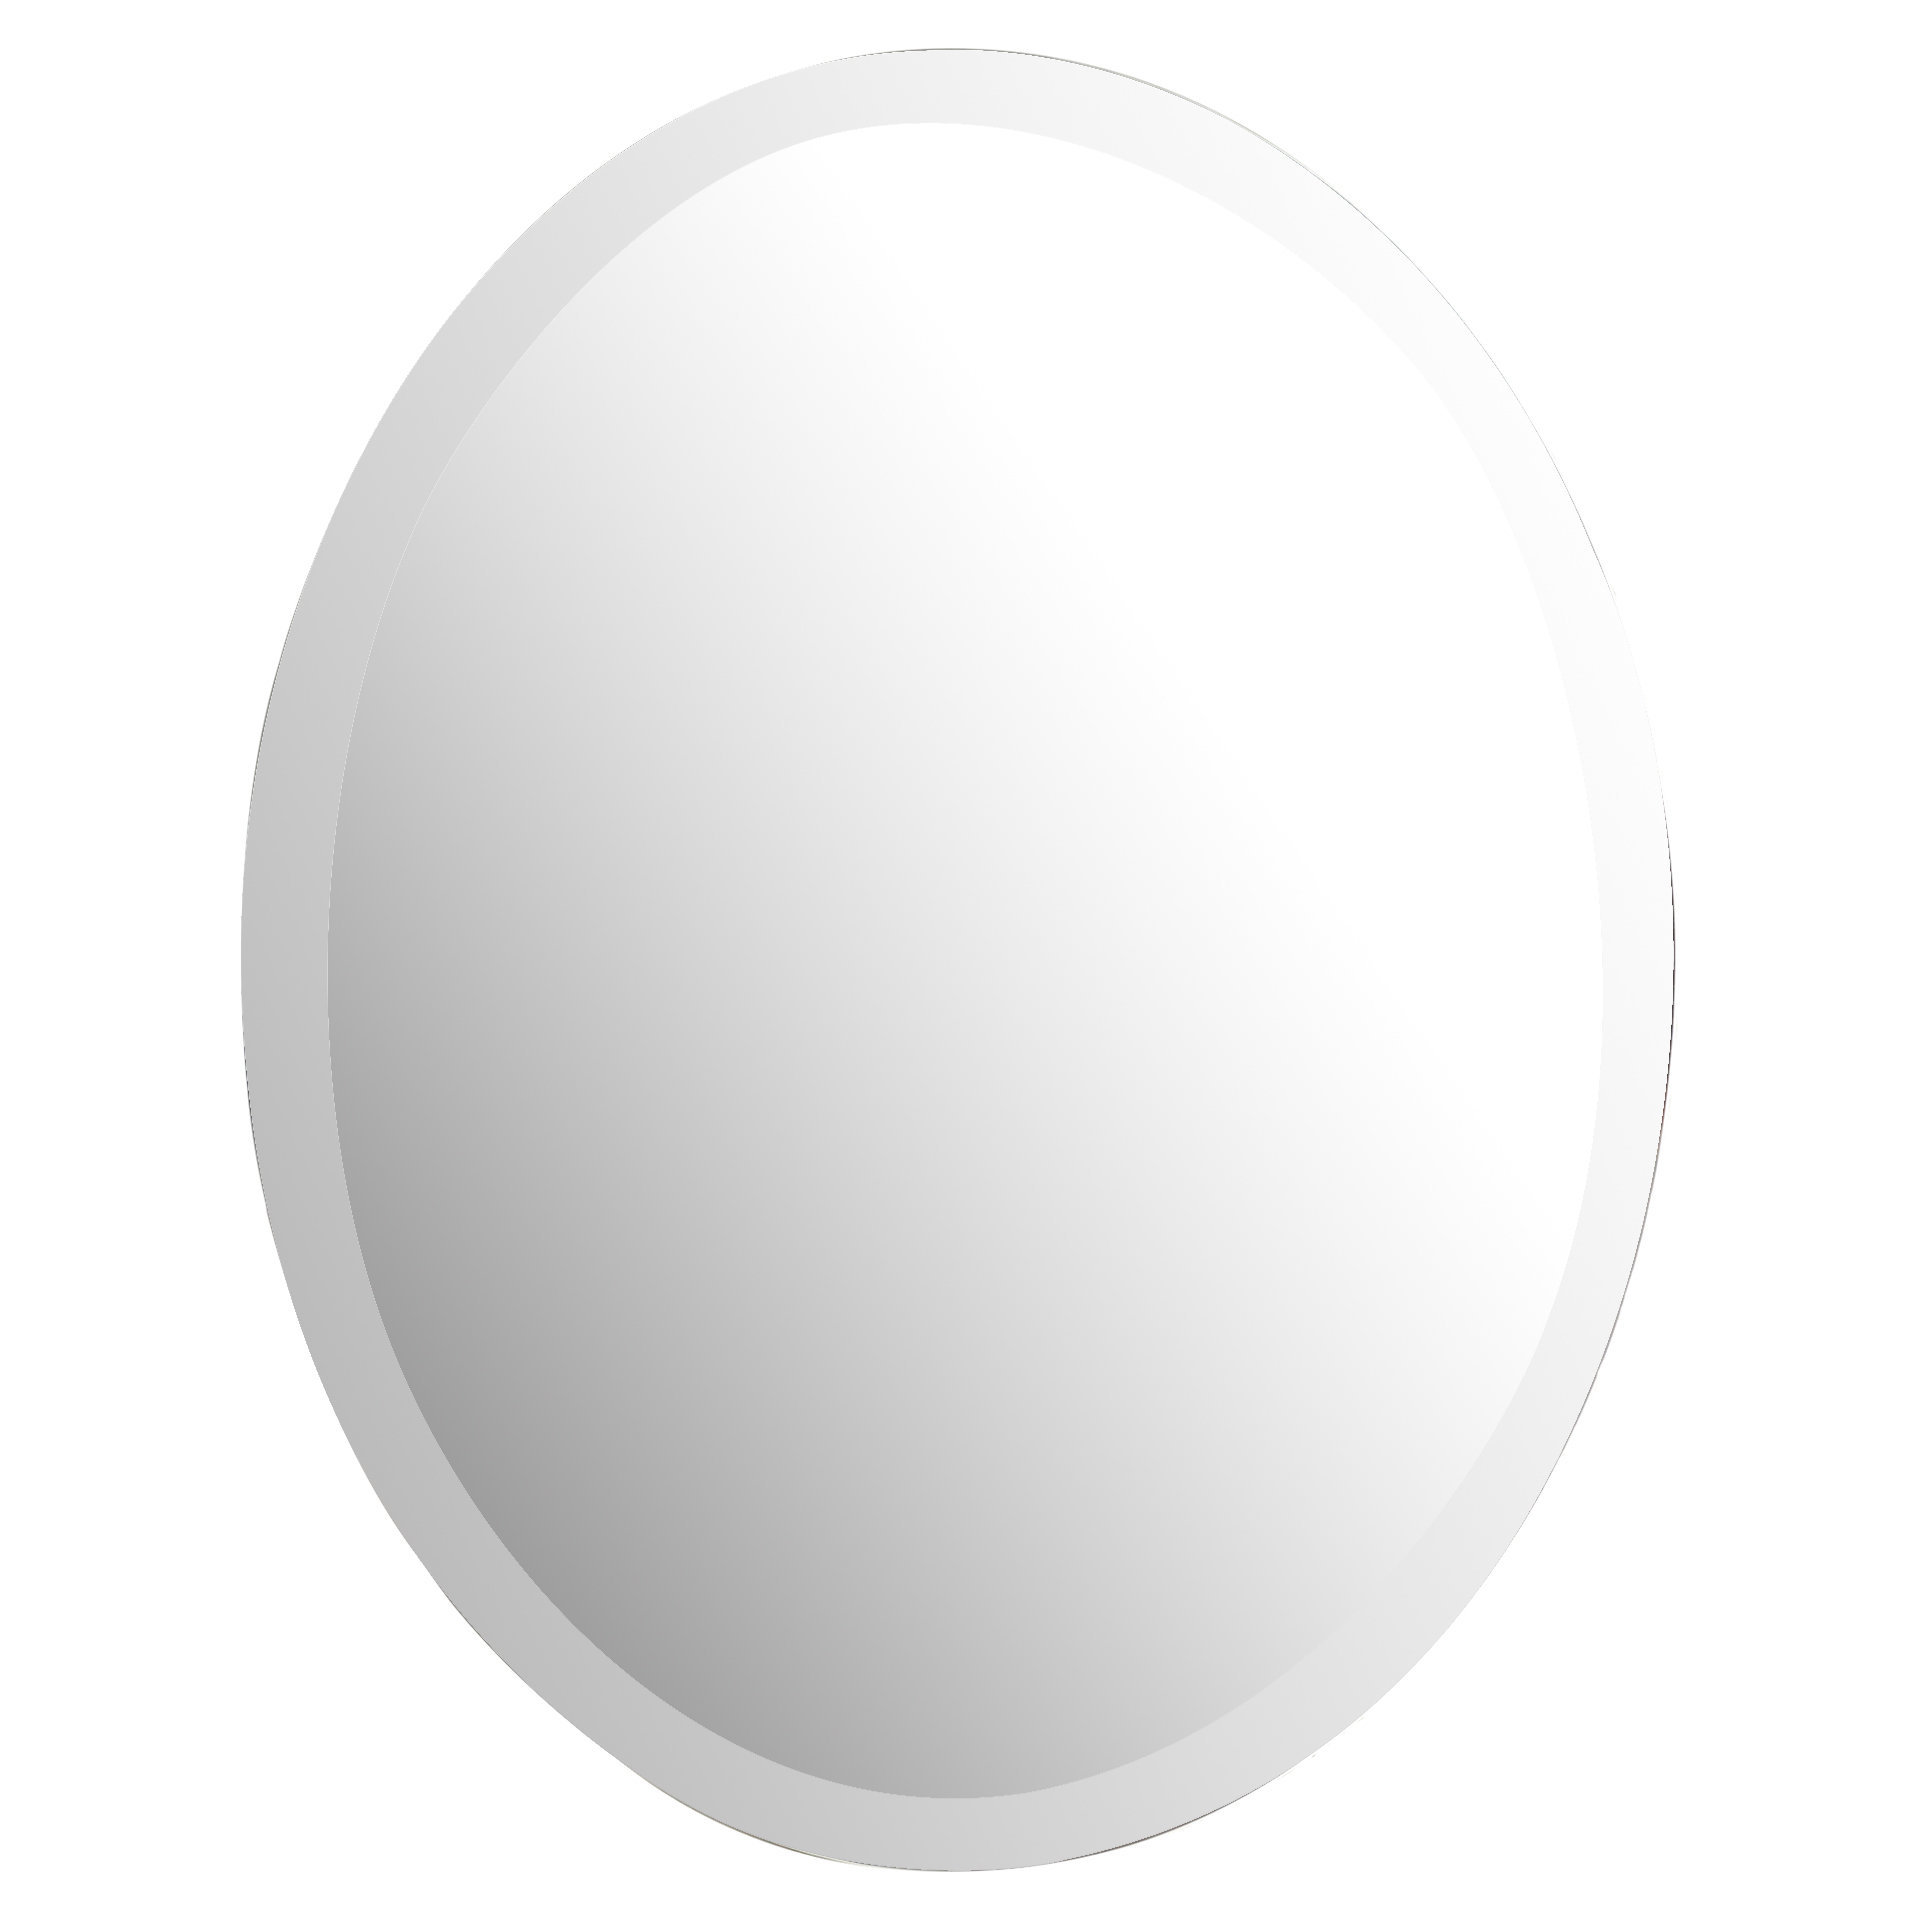 Gaunts Earthcott Mirror Intended For Gaunts Earthcott Modern & Contemporary Beveled Accent Mirrors (Image 7 of 20)